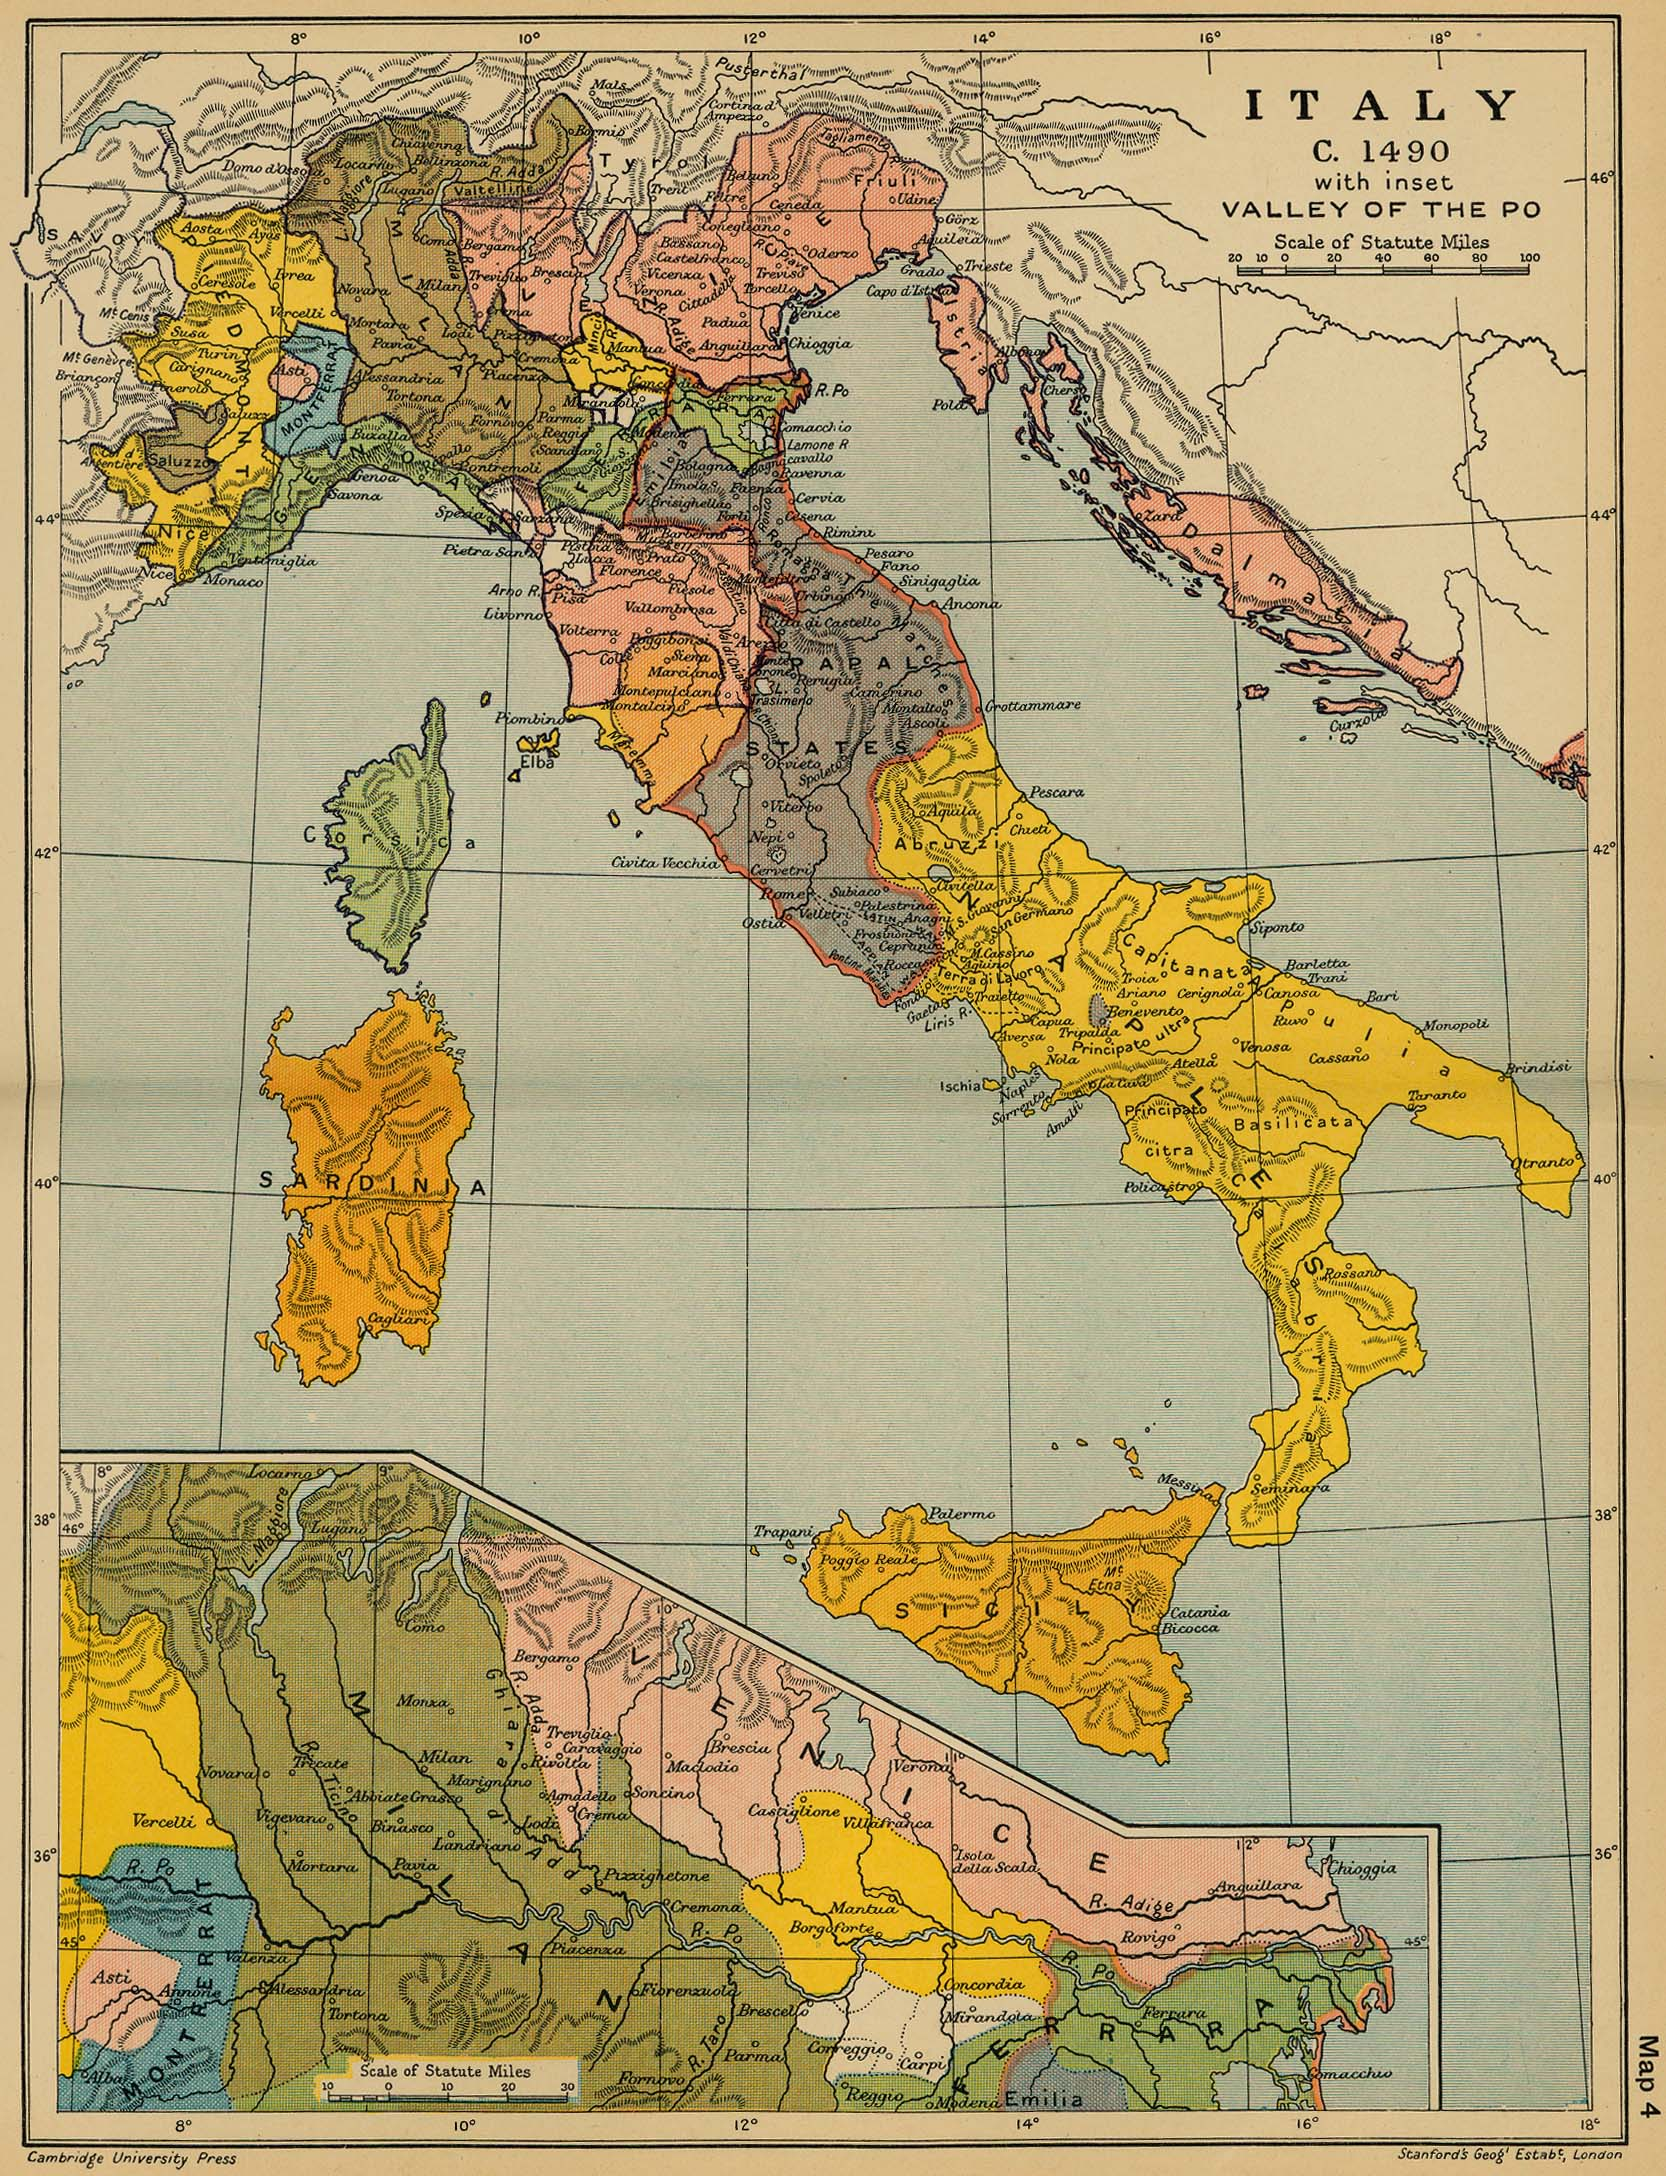 Map of Italy in 1490. Inset: Valley of the Po.